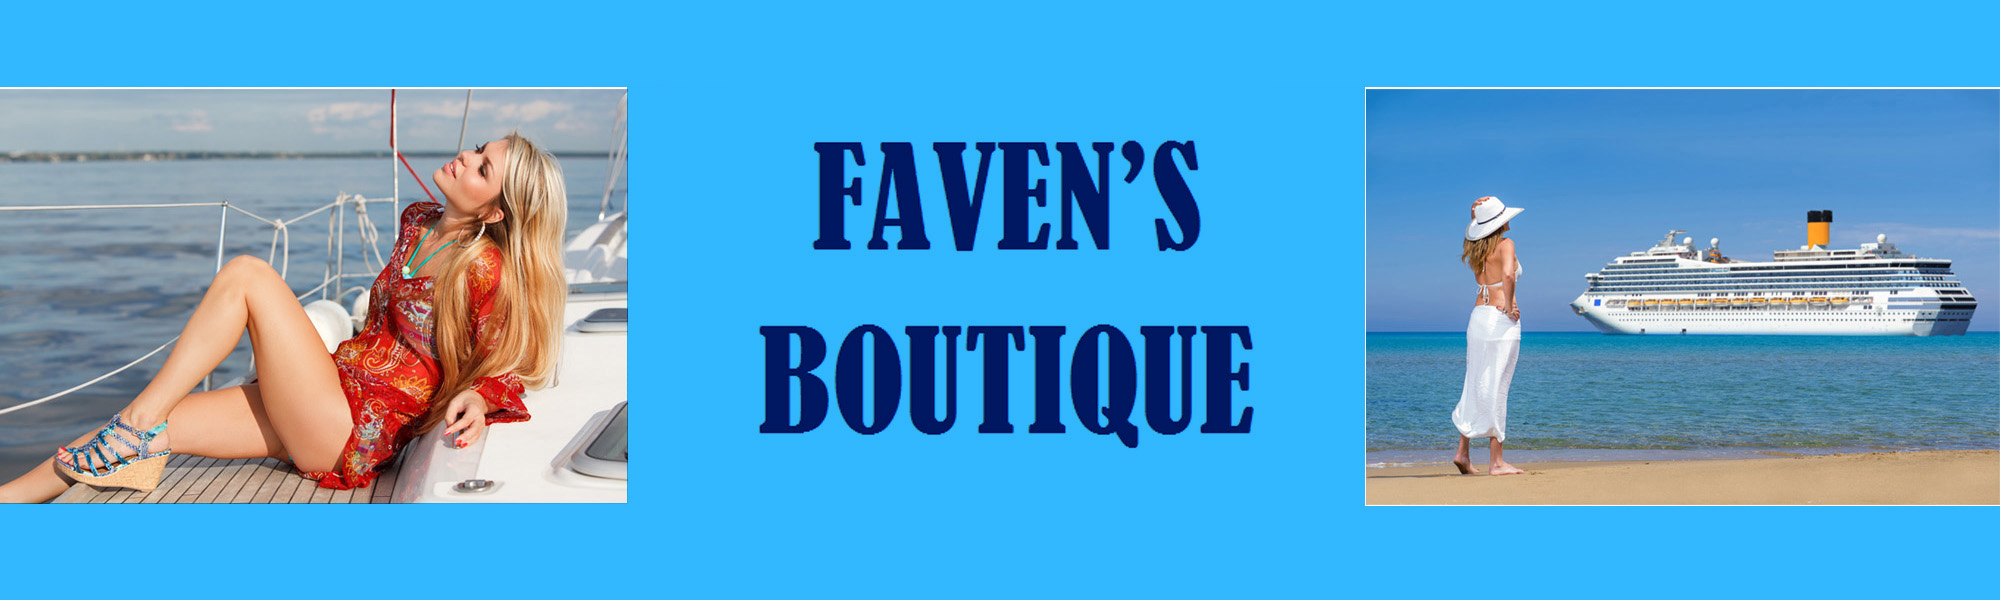 Faven's Boutique